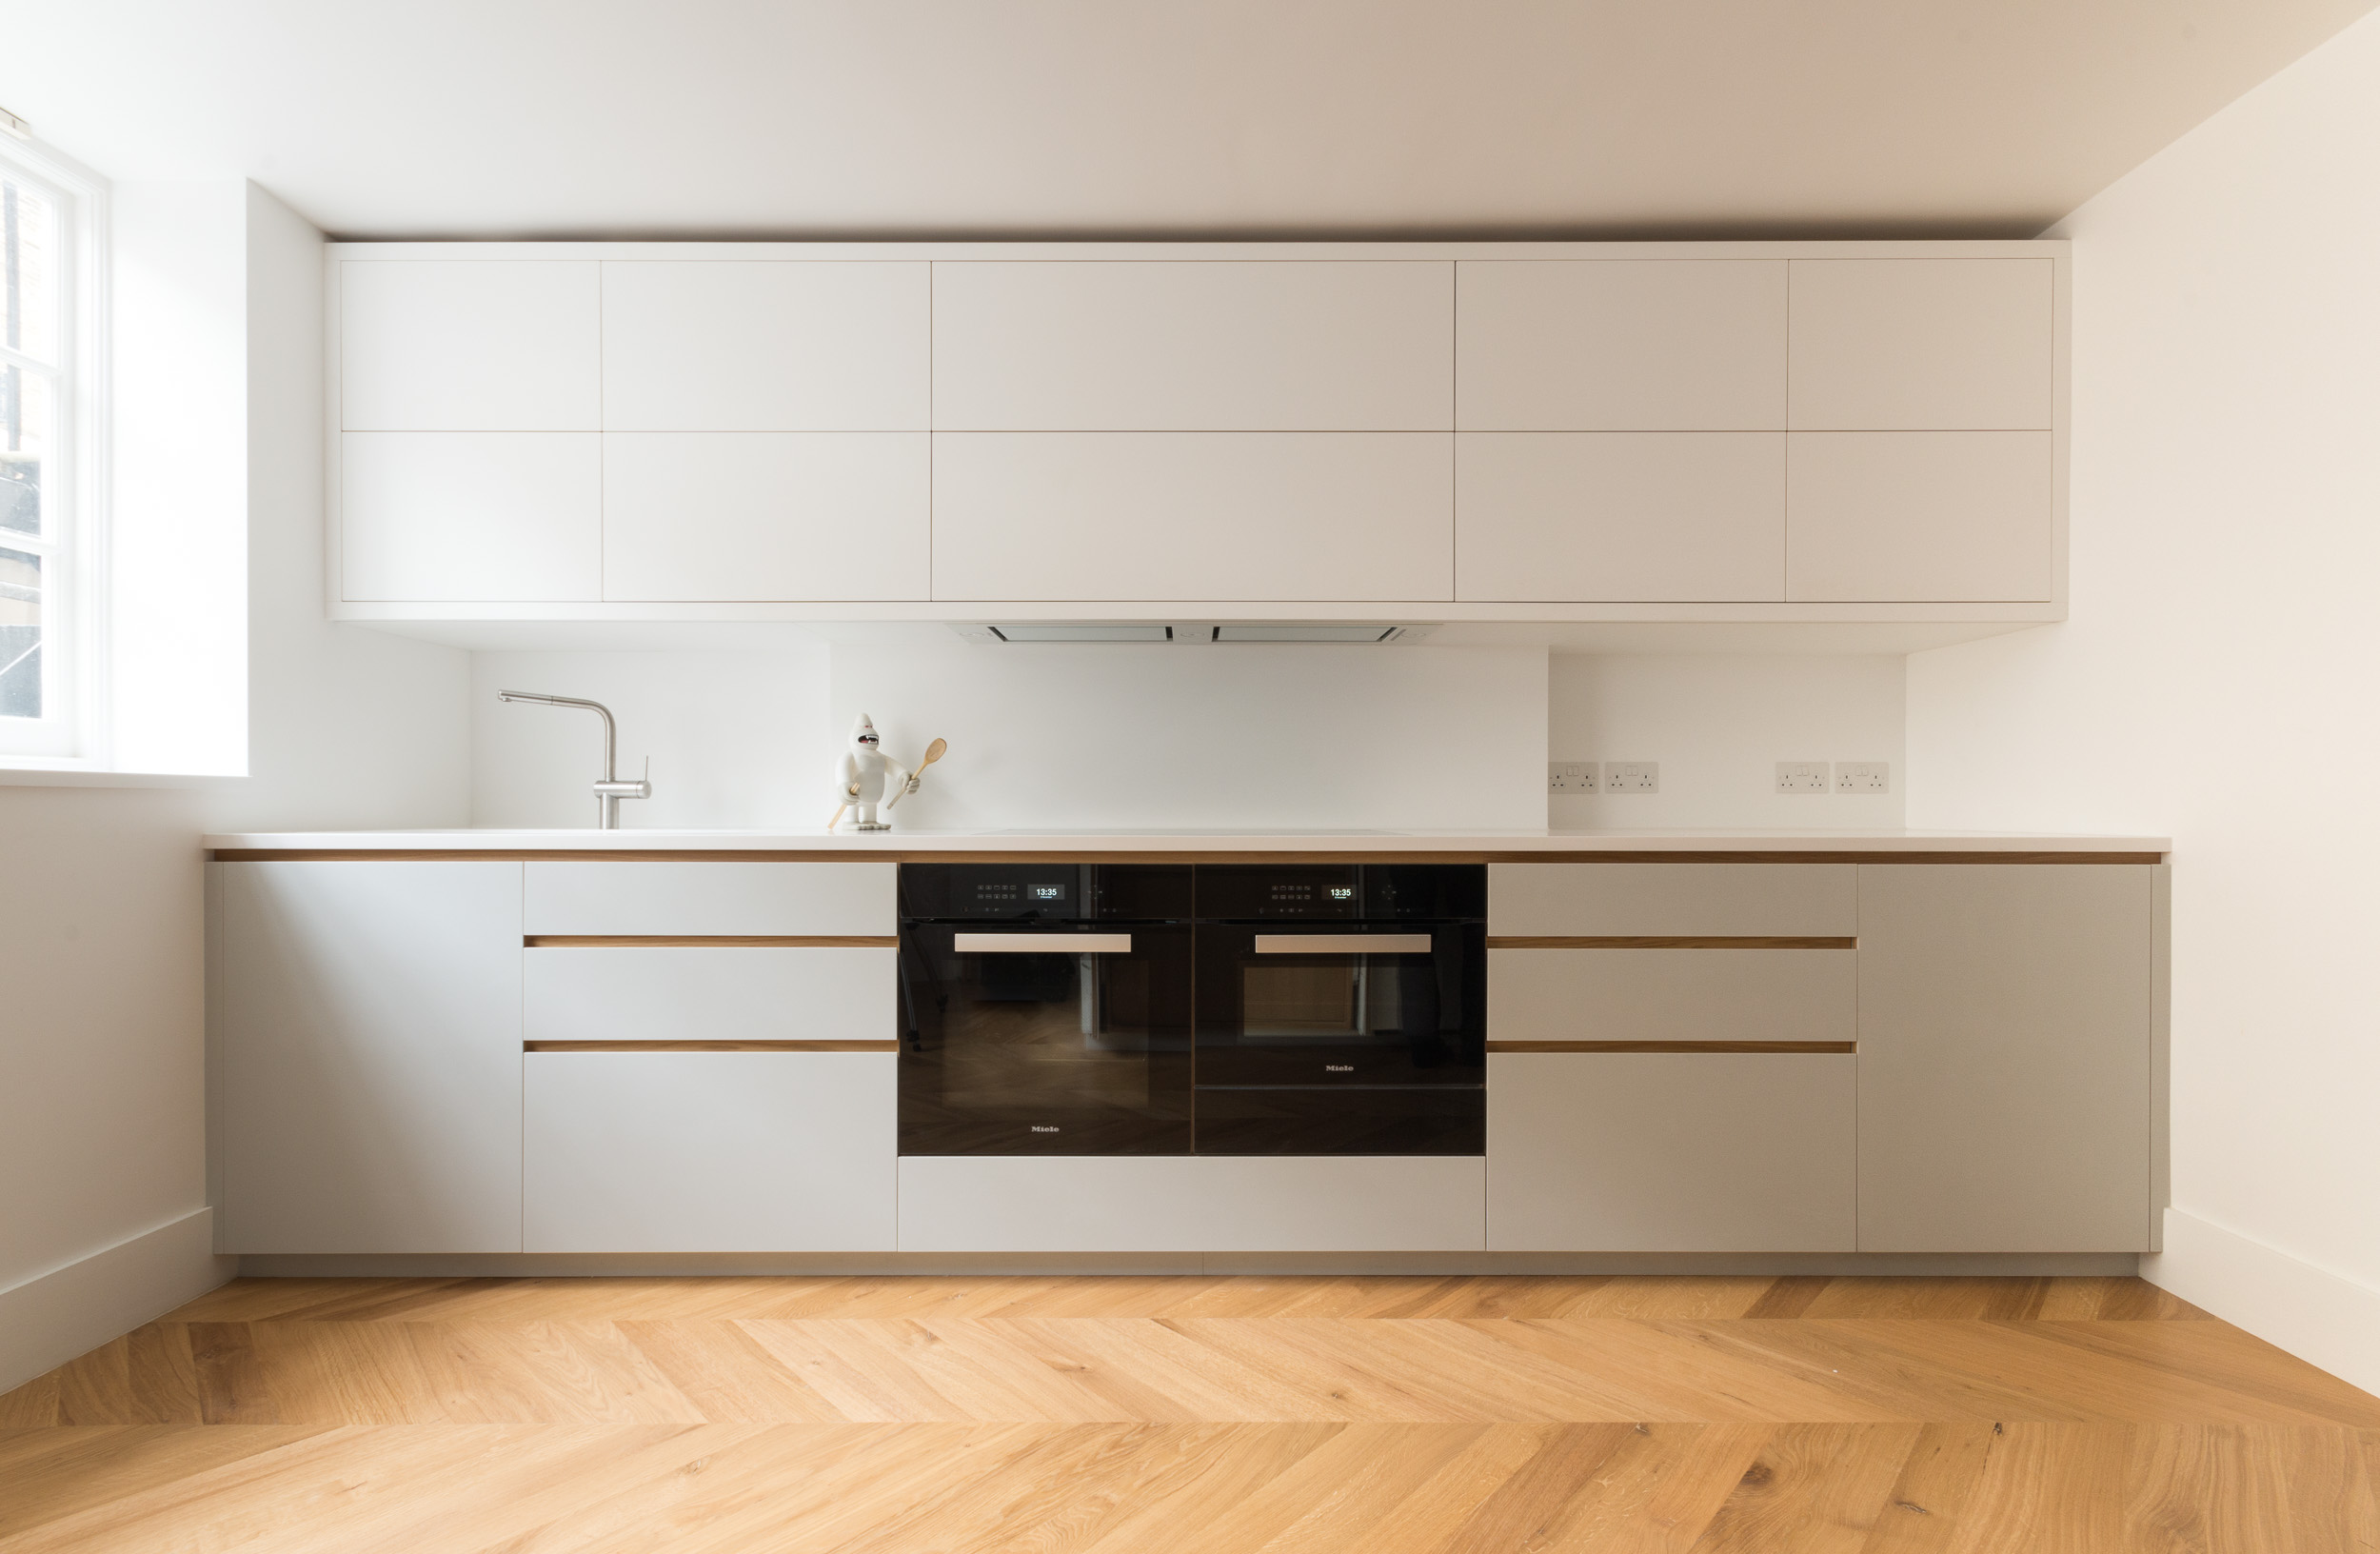 Copy of Bespoke Graham Terrace Kitchen and bespoke cabinets in West London